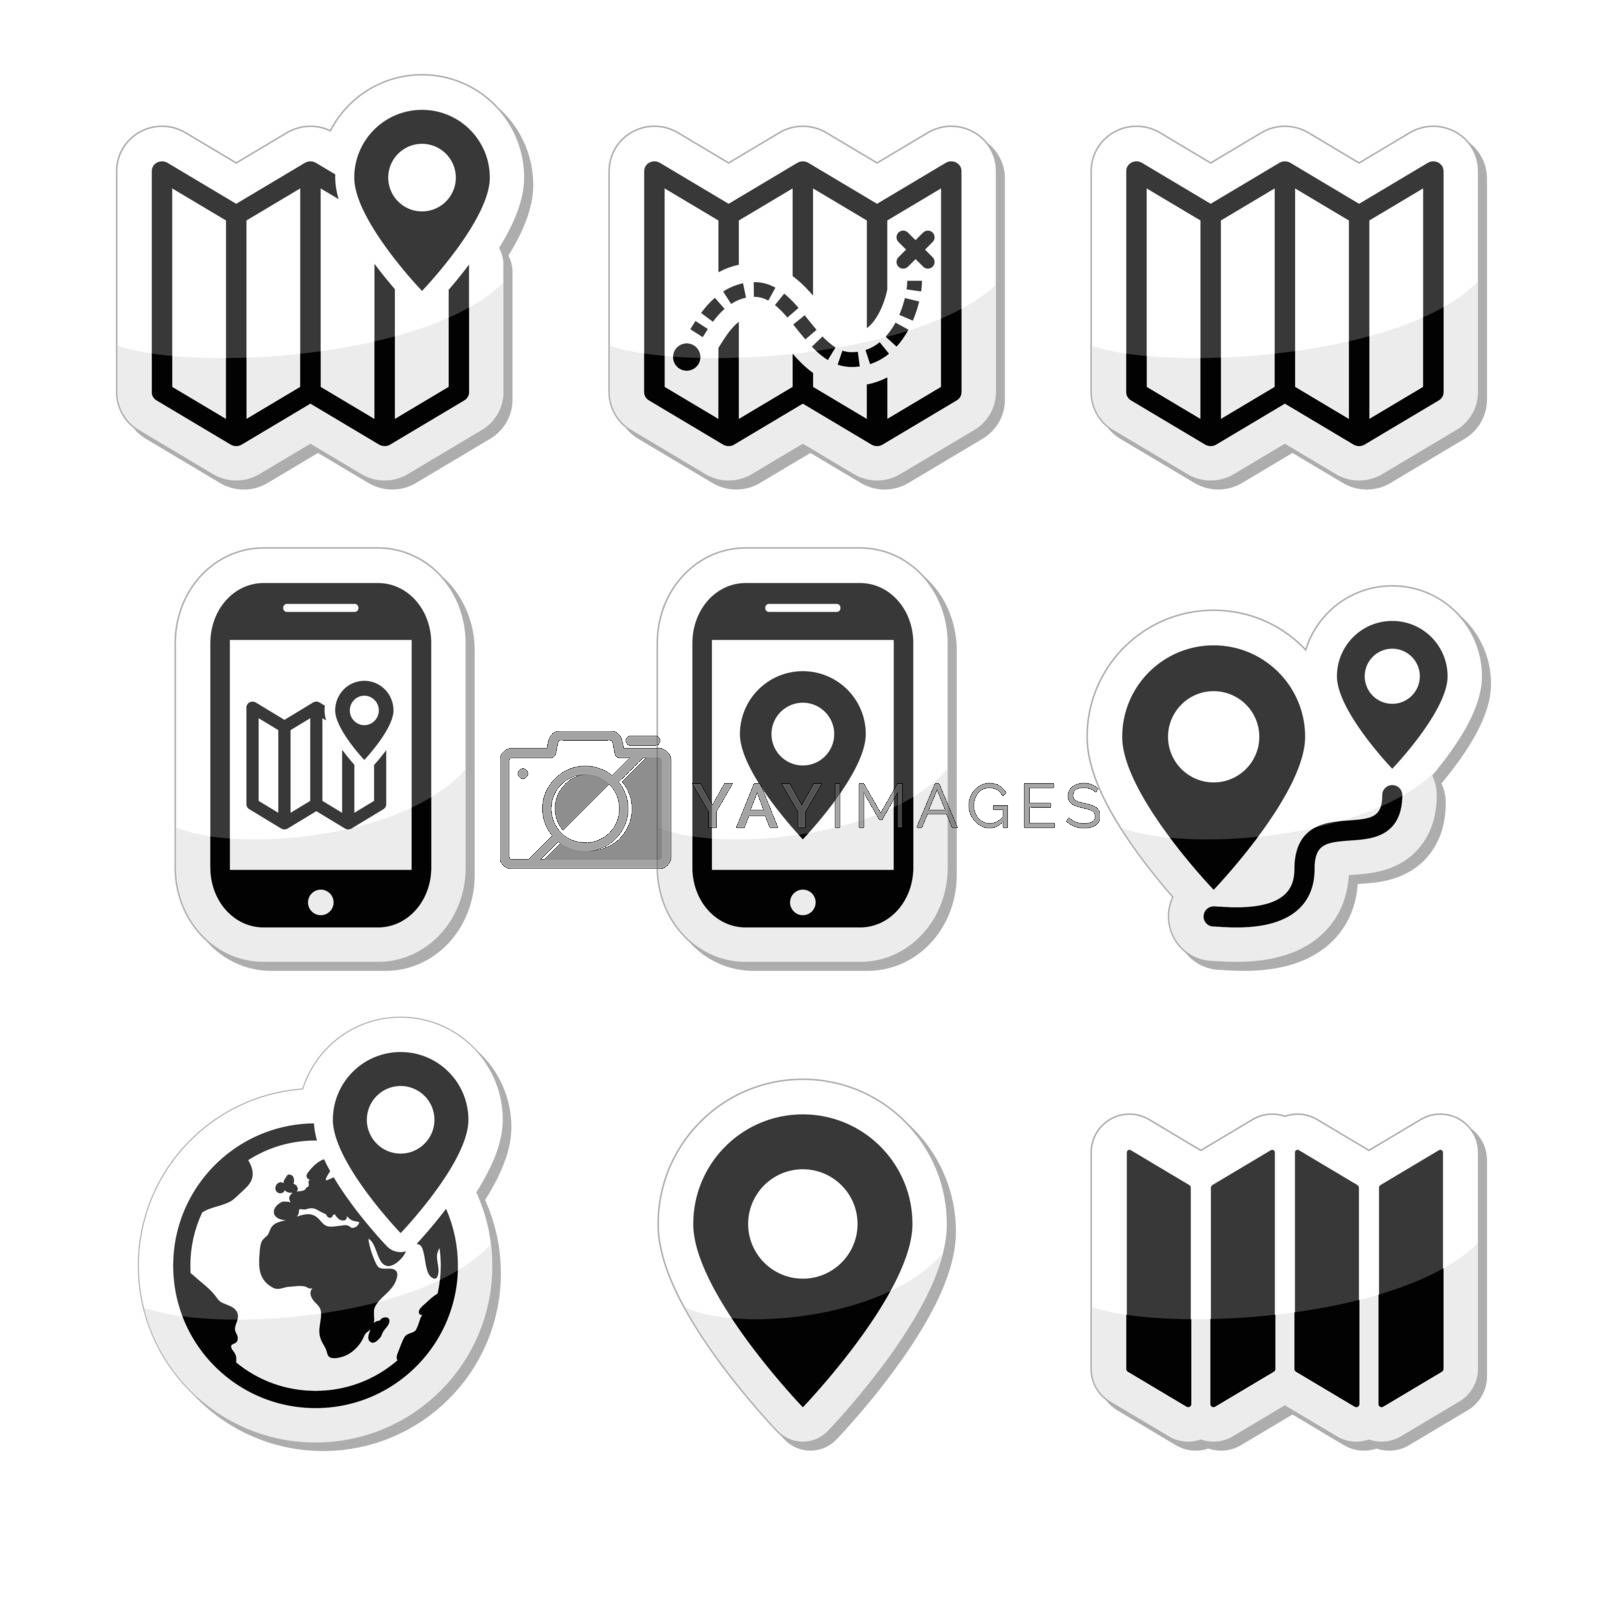 Map and navigation vector icons set isolated on white